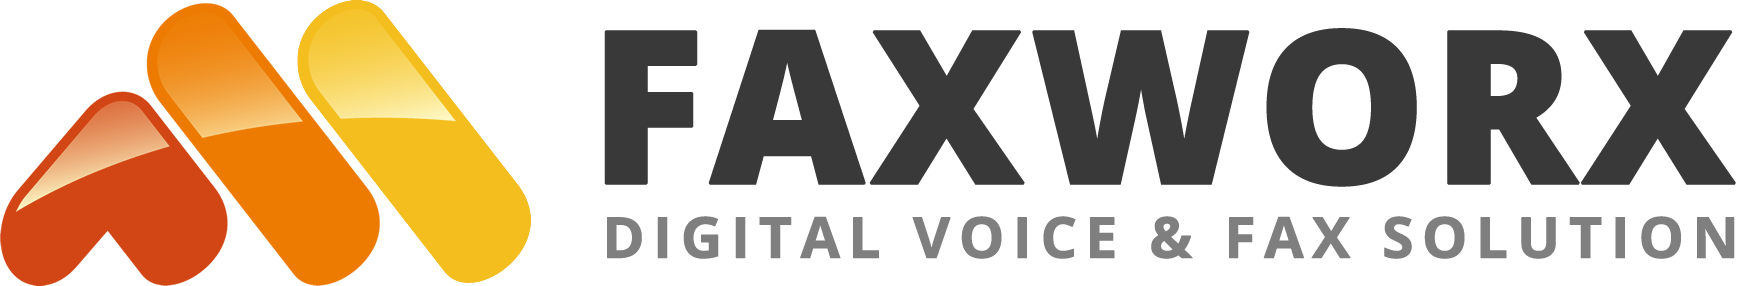 Free Fax to Email / Email to Fax / Fax2Email - FaxWorx